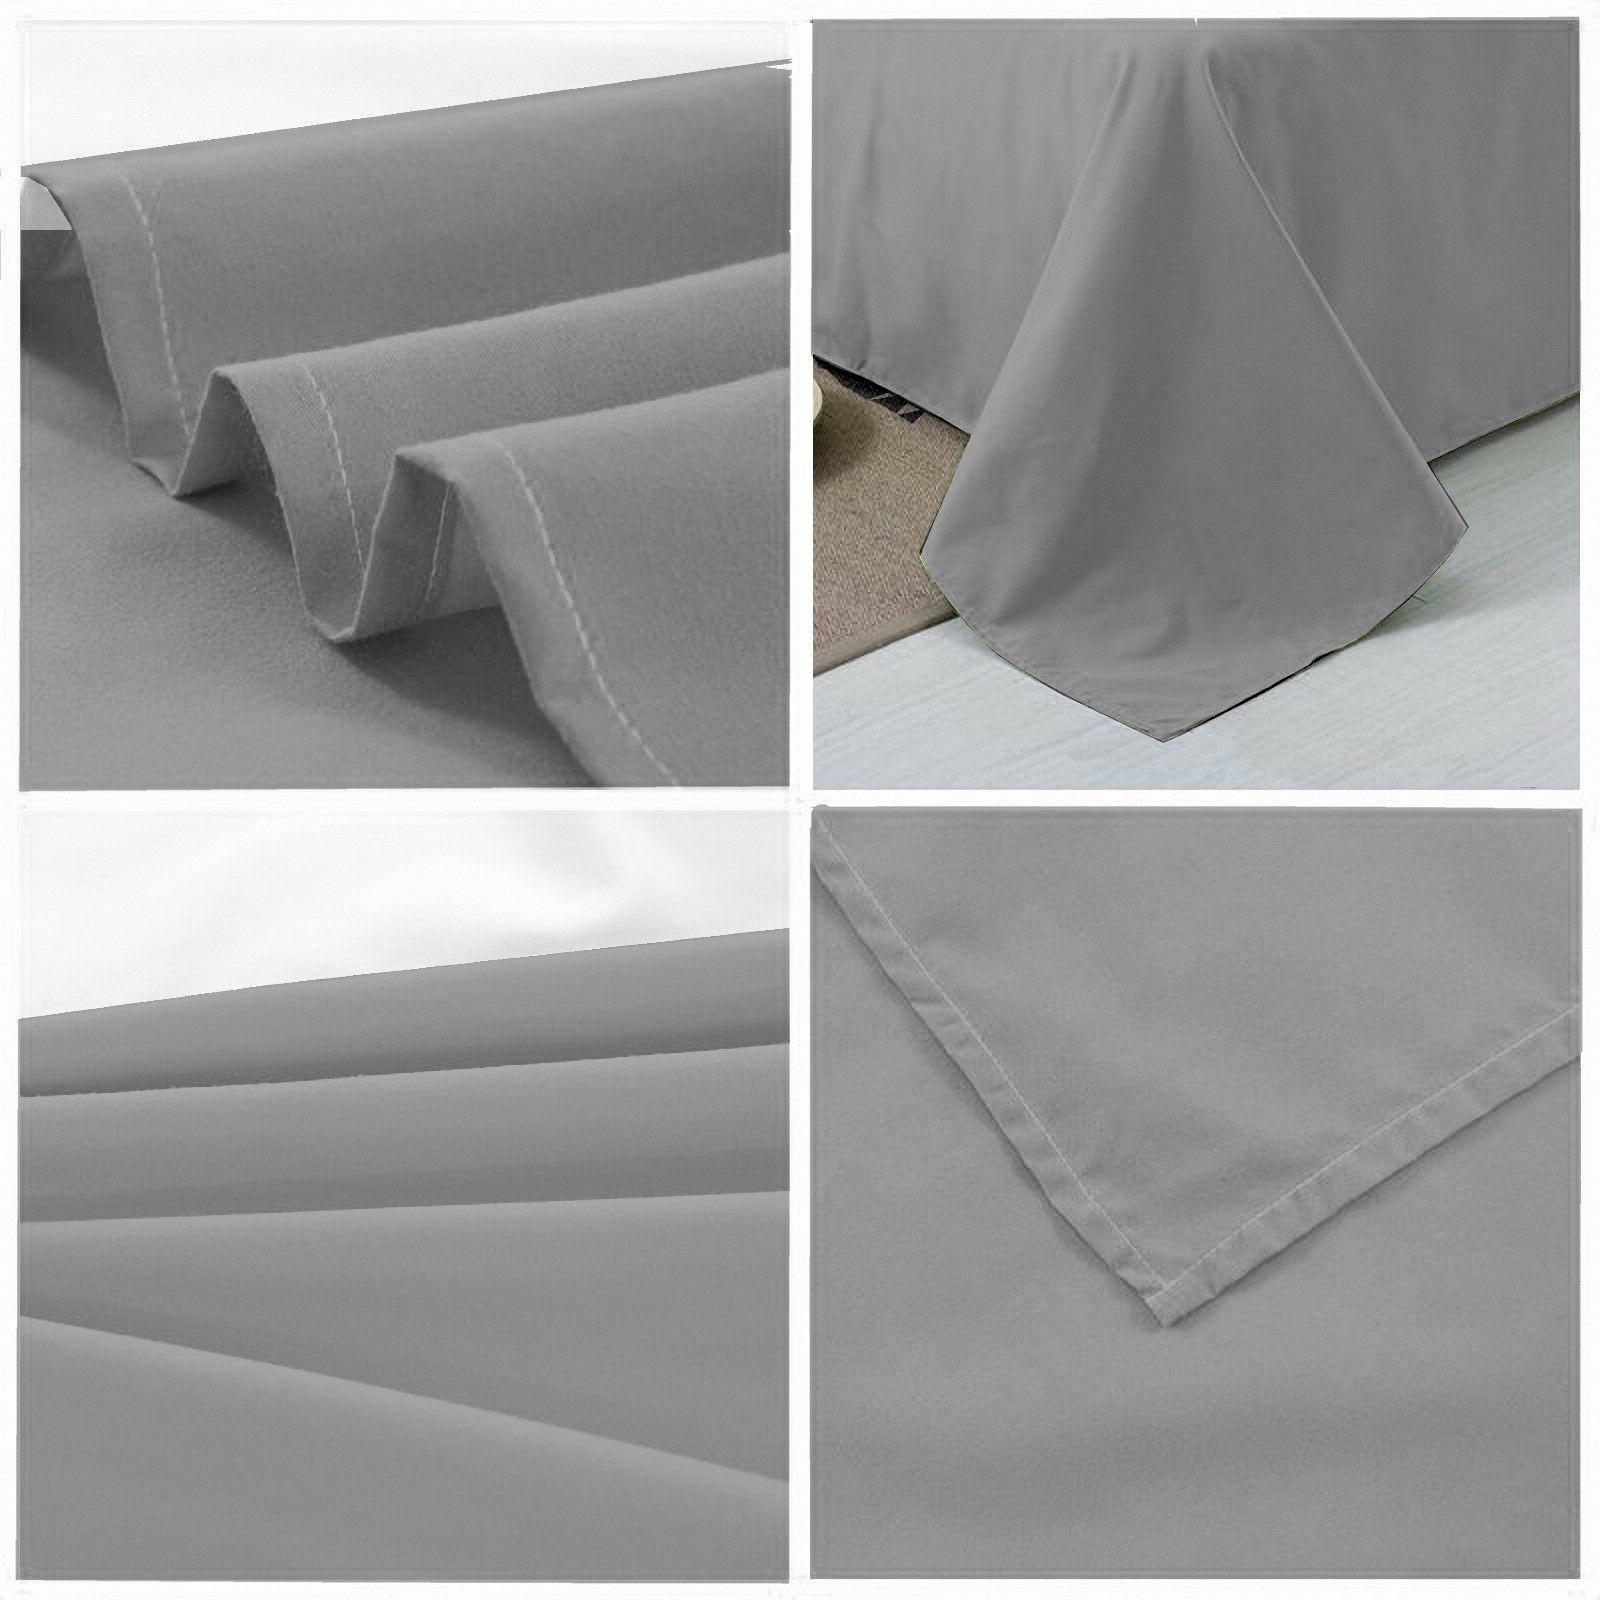 Flat - Extra Soft,Breathable& ,Hotel Quality,